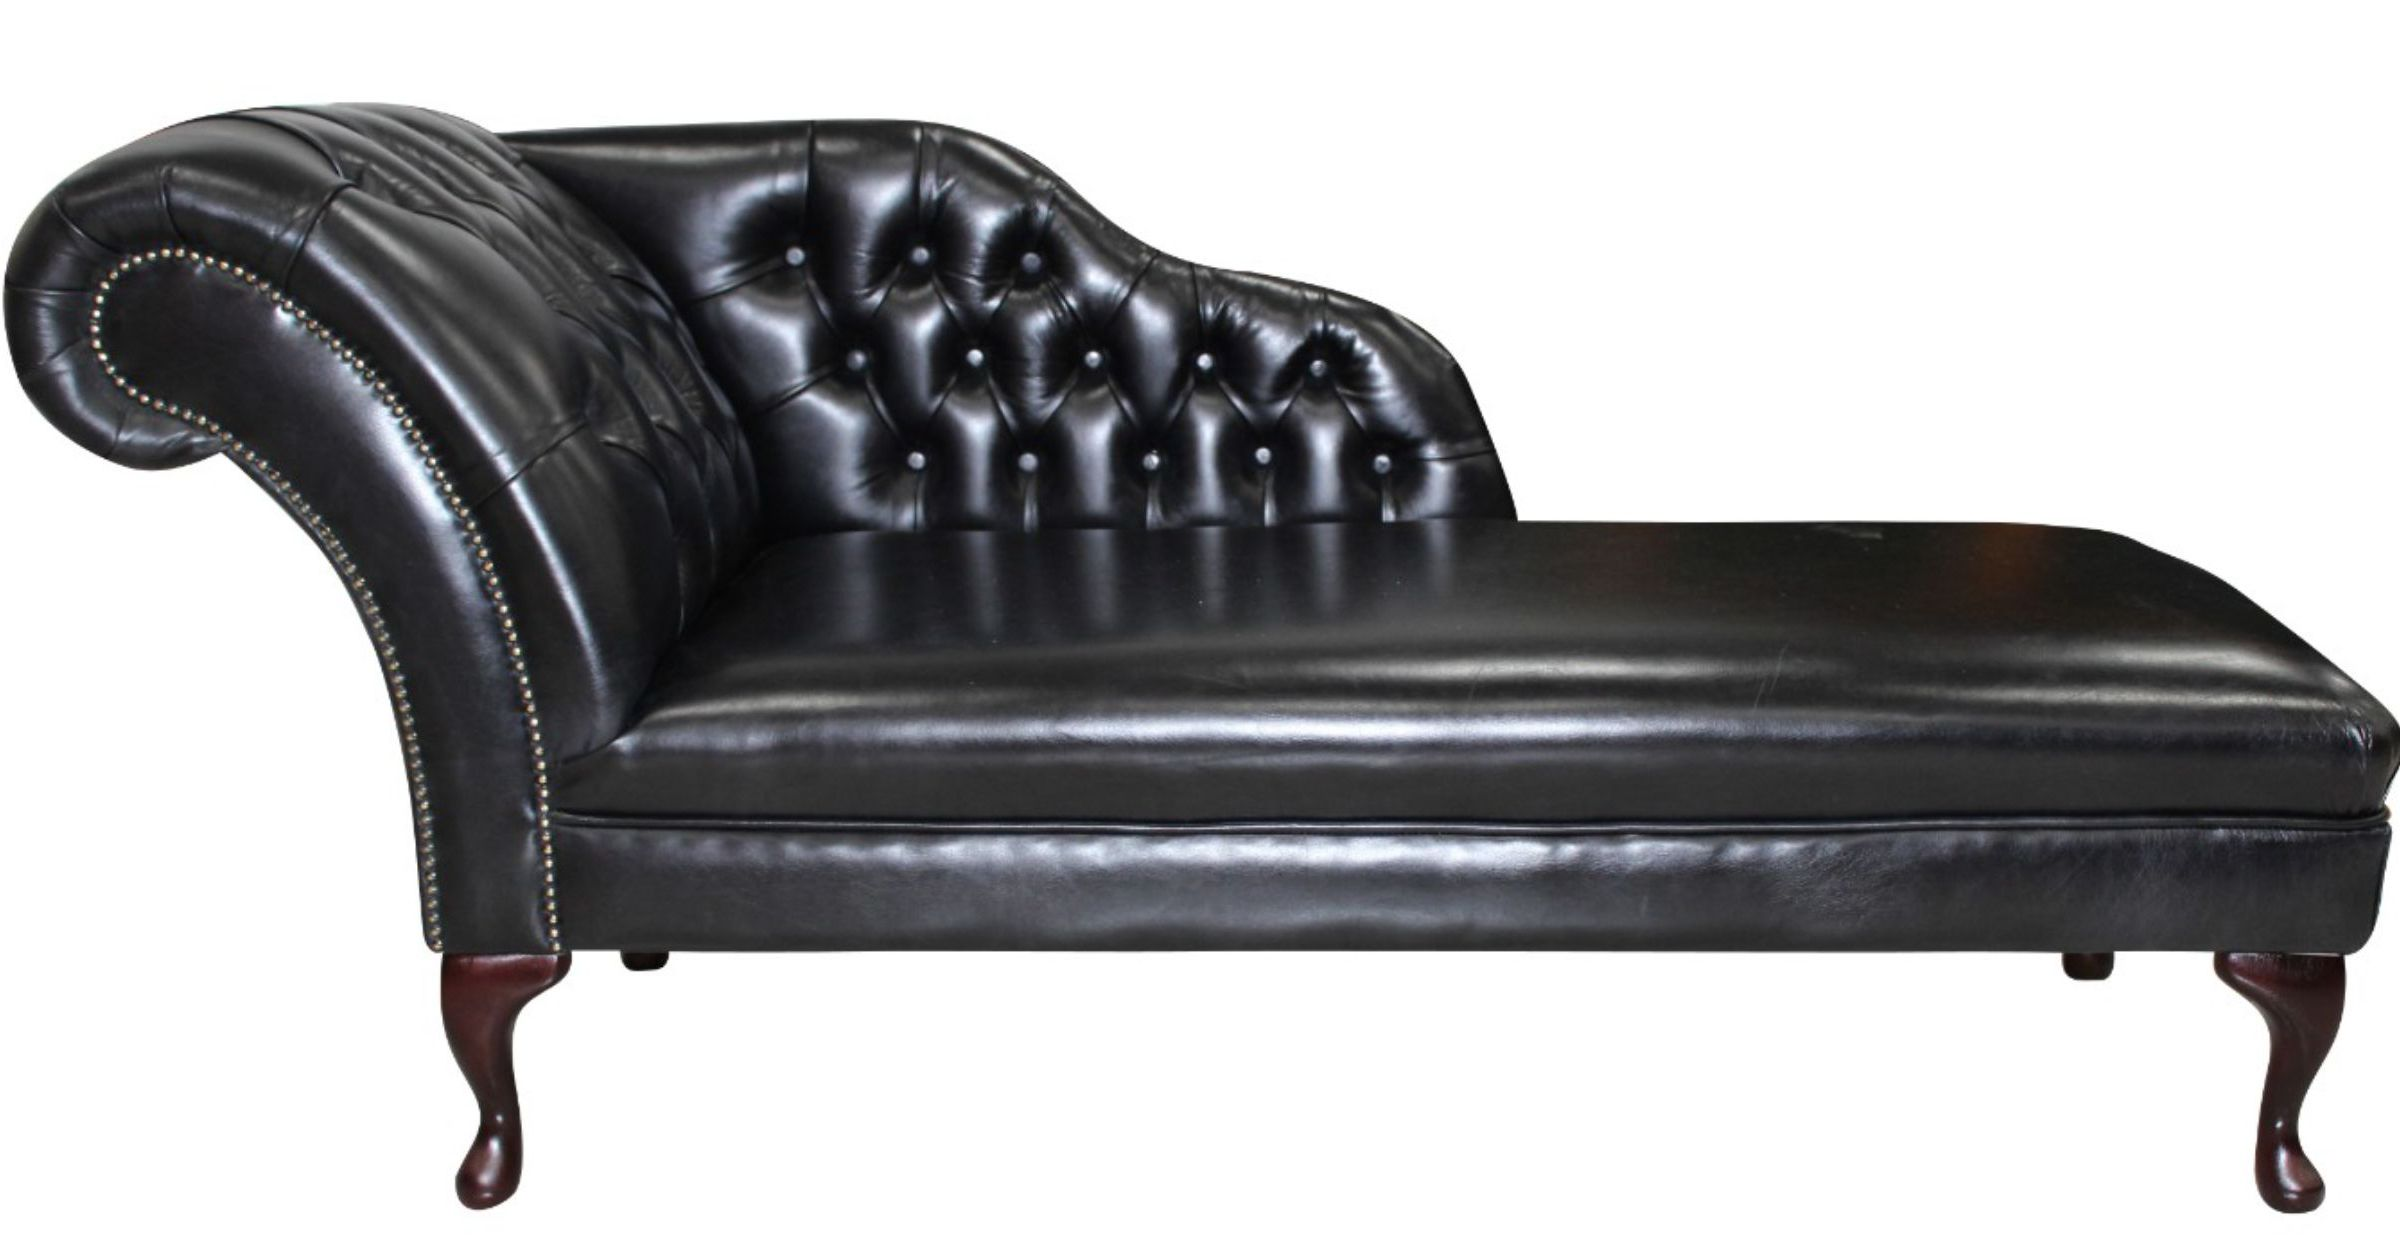 Chesterfield leather chaise lounge day bed designersofas4u for Chaise lounge black